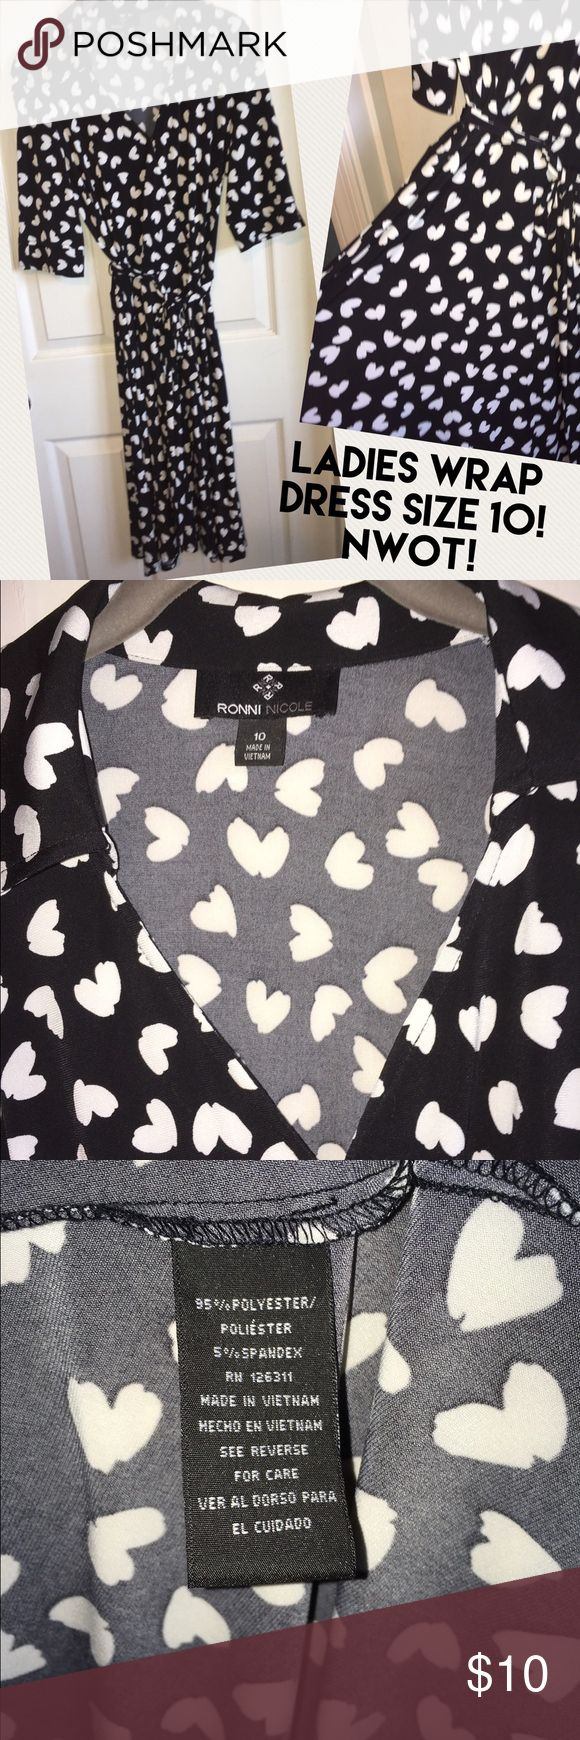 Super cute HEARTS Ladies wrap dress sz 10! This black & white wrap dress is so CUTE! I bought it to wear to a work event and ended up wearing pants instead, so it's NWOT. The brand is Ronni Nicole, I bought it at our Marine Corps exchange. See pics of tags for care instructions :) Ronni Nicole Dresses Midi